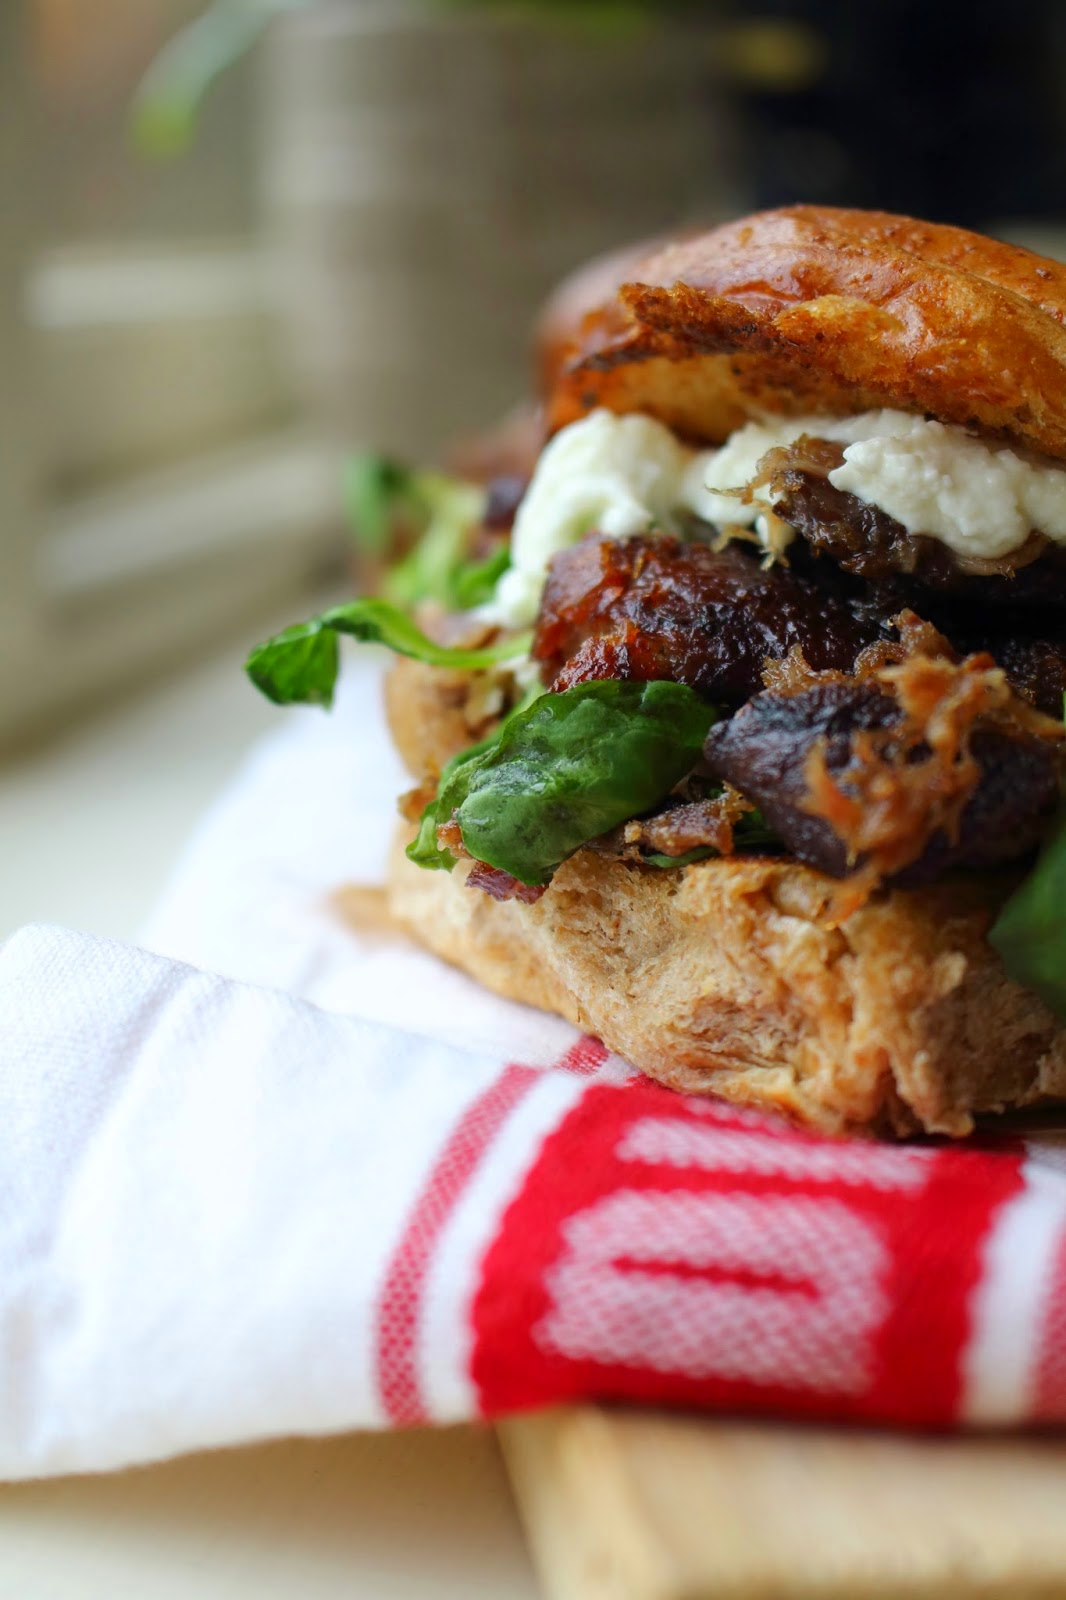 Shredded duck leg burger